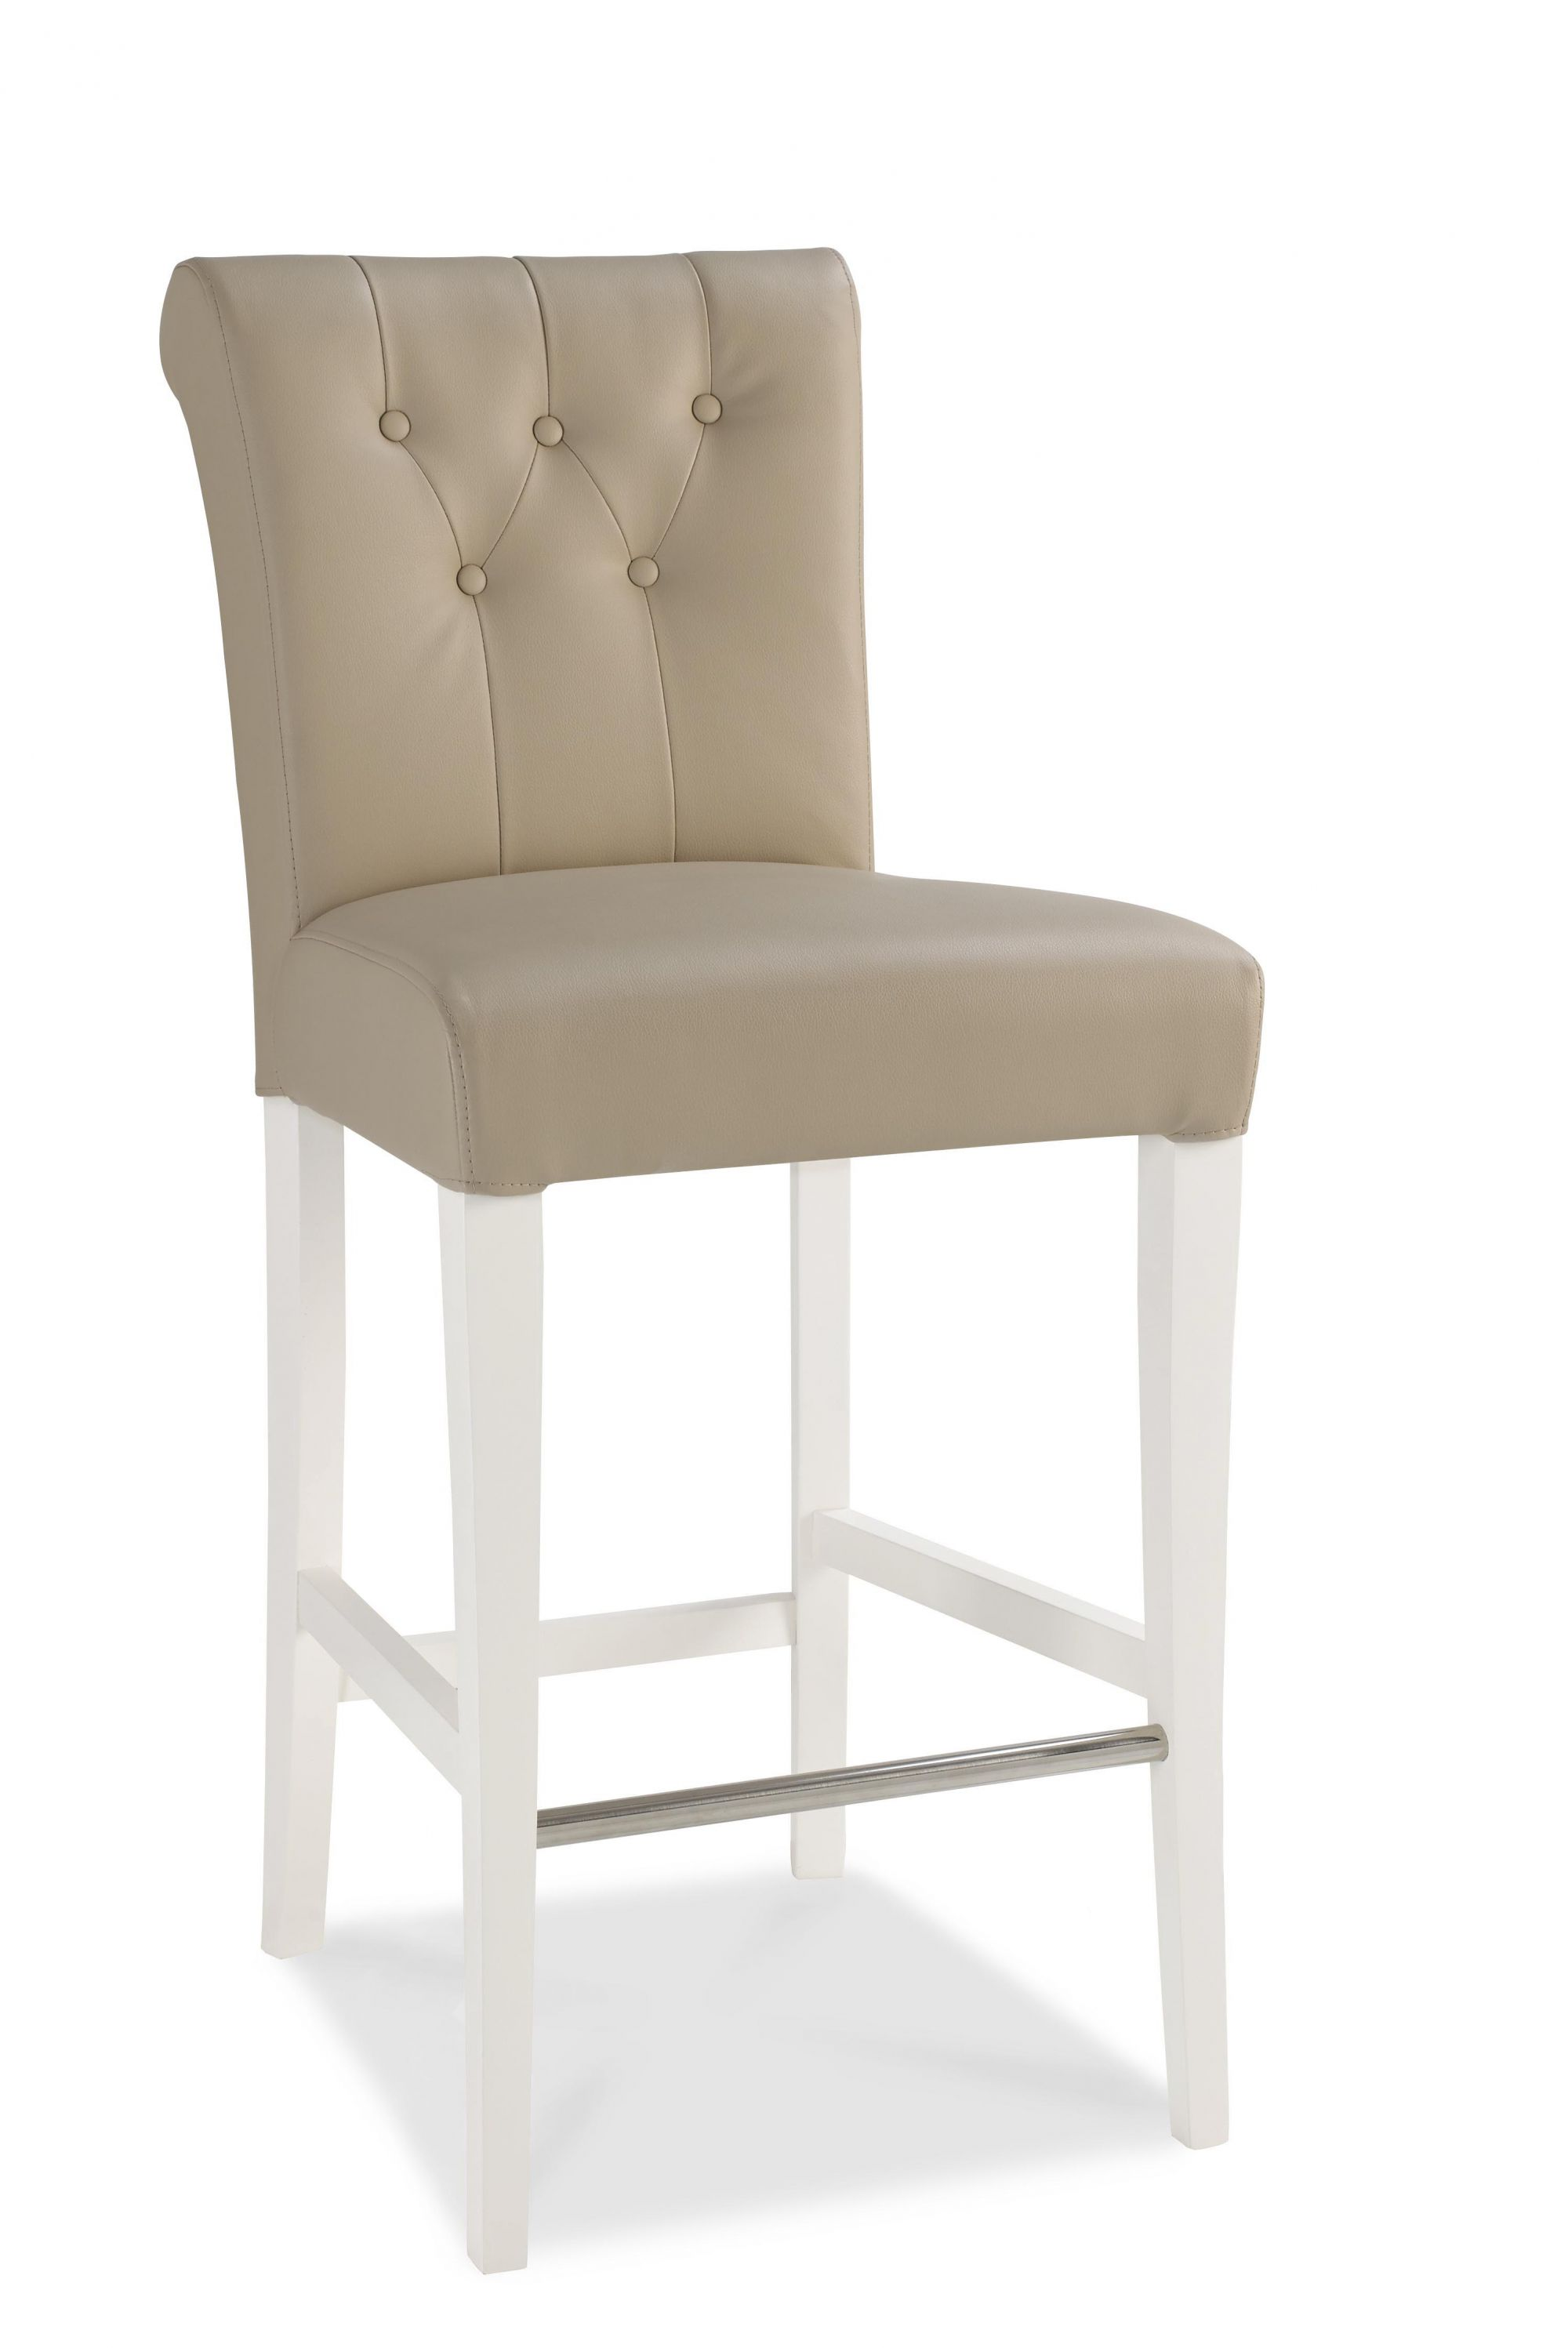 Bentley Designs Hampstead Two Tone Upholstered Bar Stool Pair